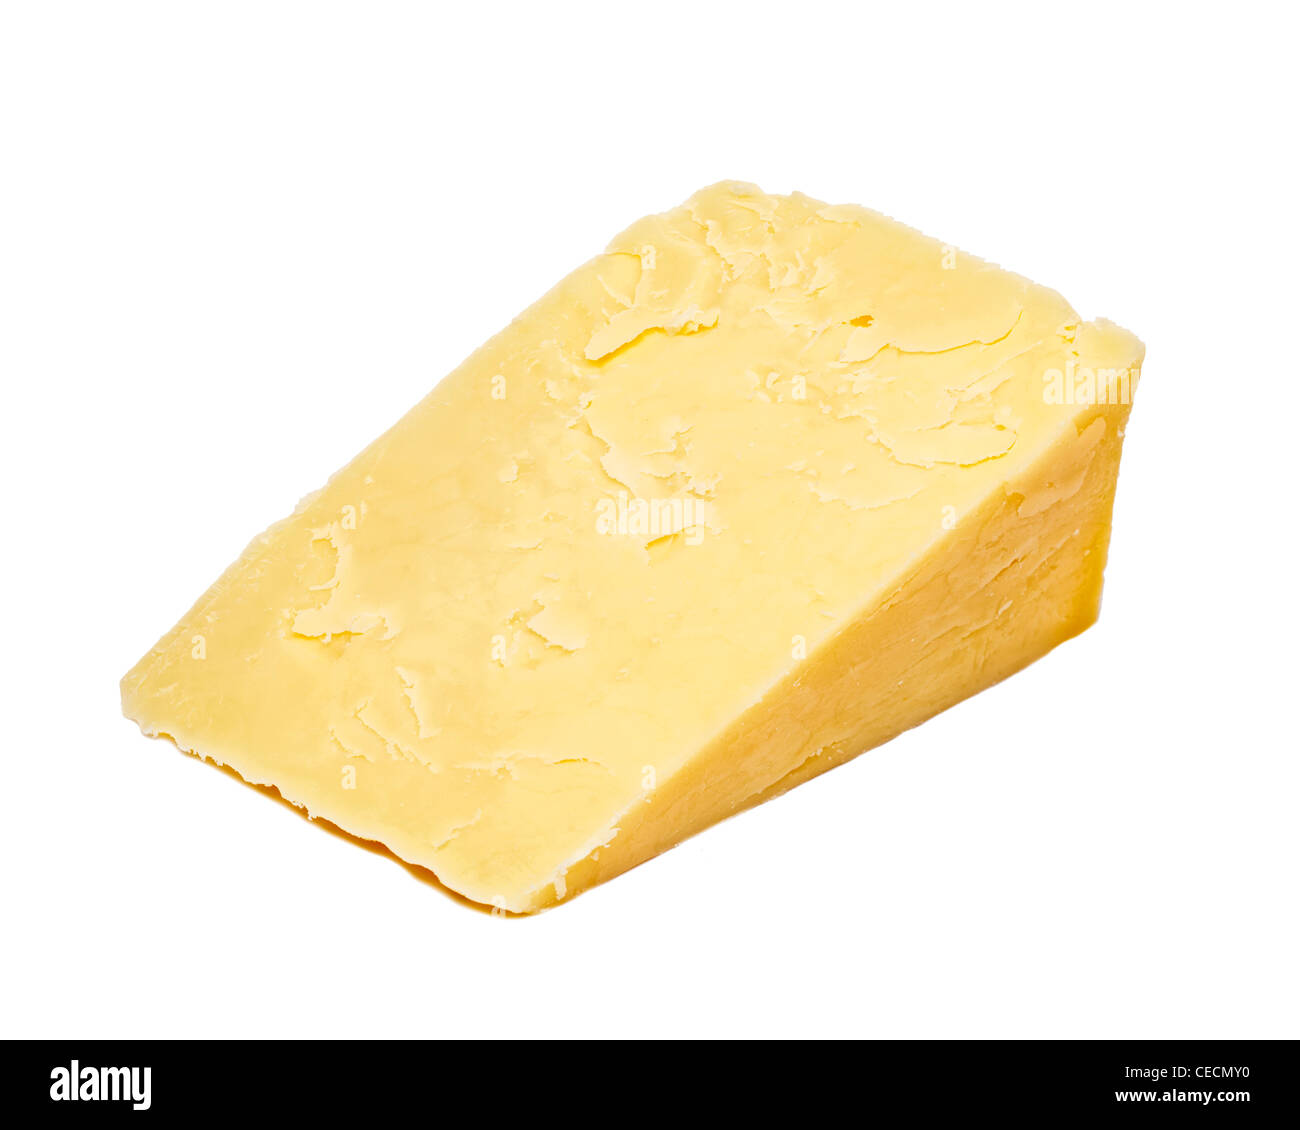 Cheddar cheese on white background - Stock Image